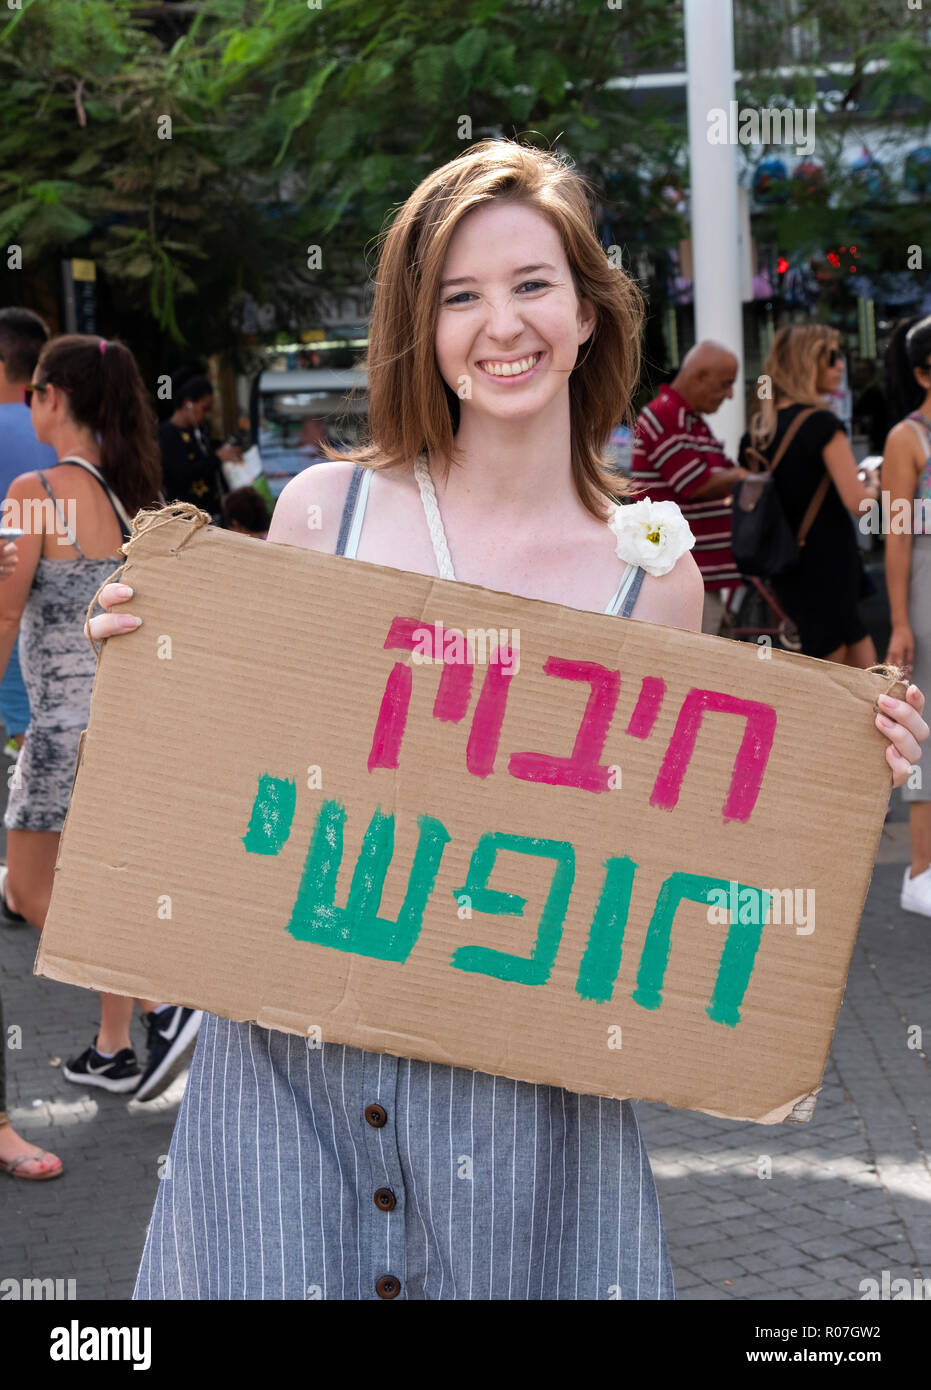 A smiling young lady with a Hebrew sign saying 'Free Hug' at the Carmel Market in Tel aviv, Israel. - Stock Image